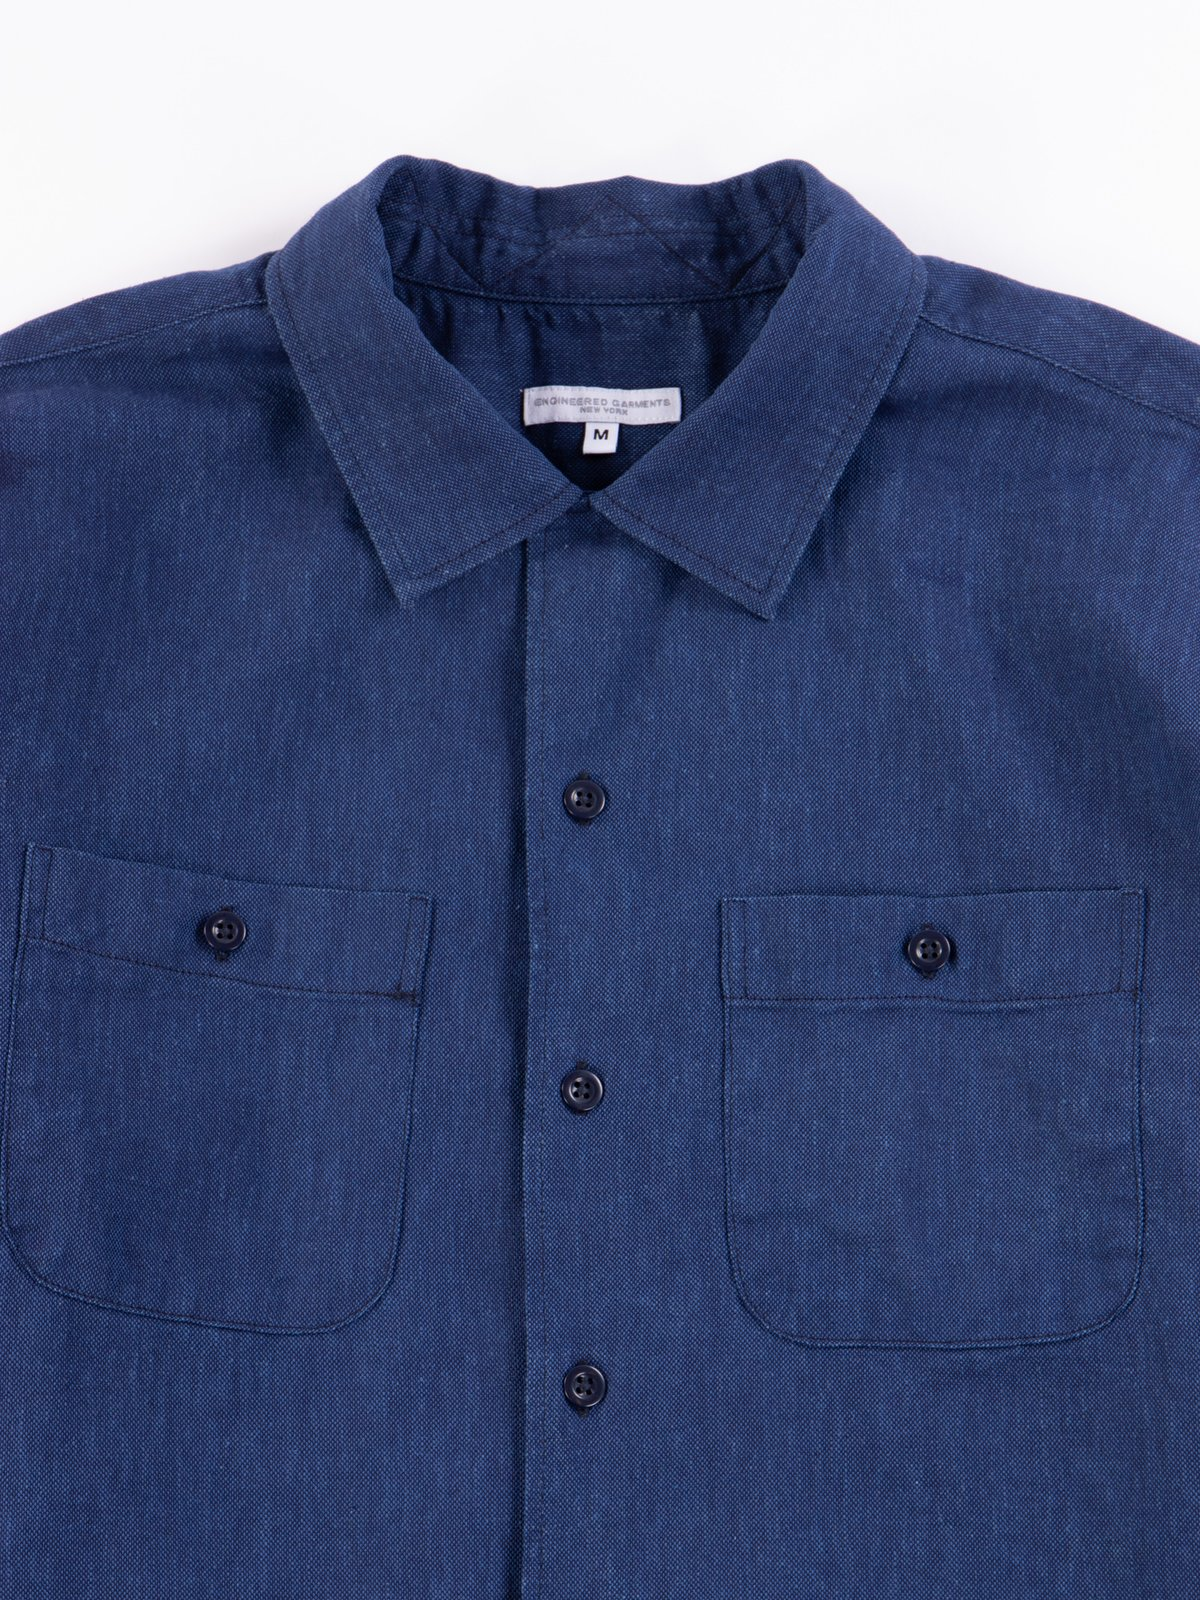 Navy CL Solid Classic Shirt - Image 4